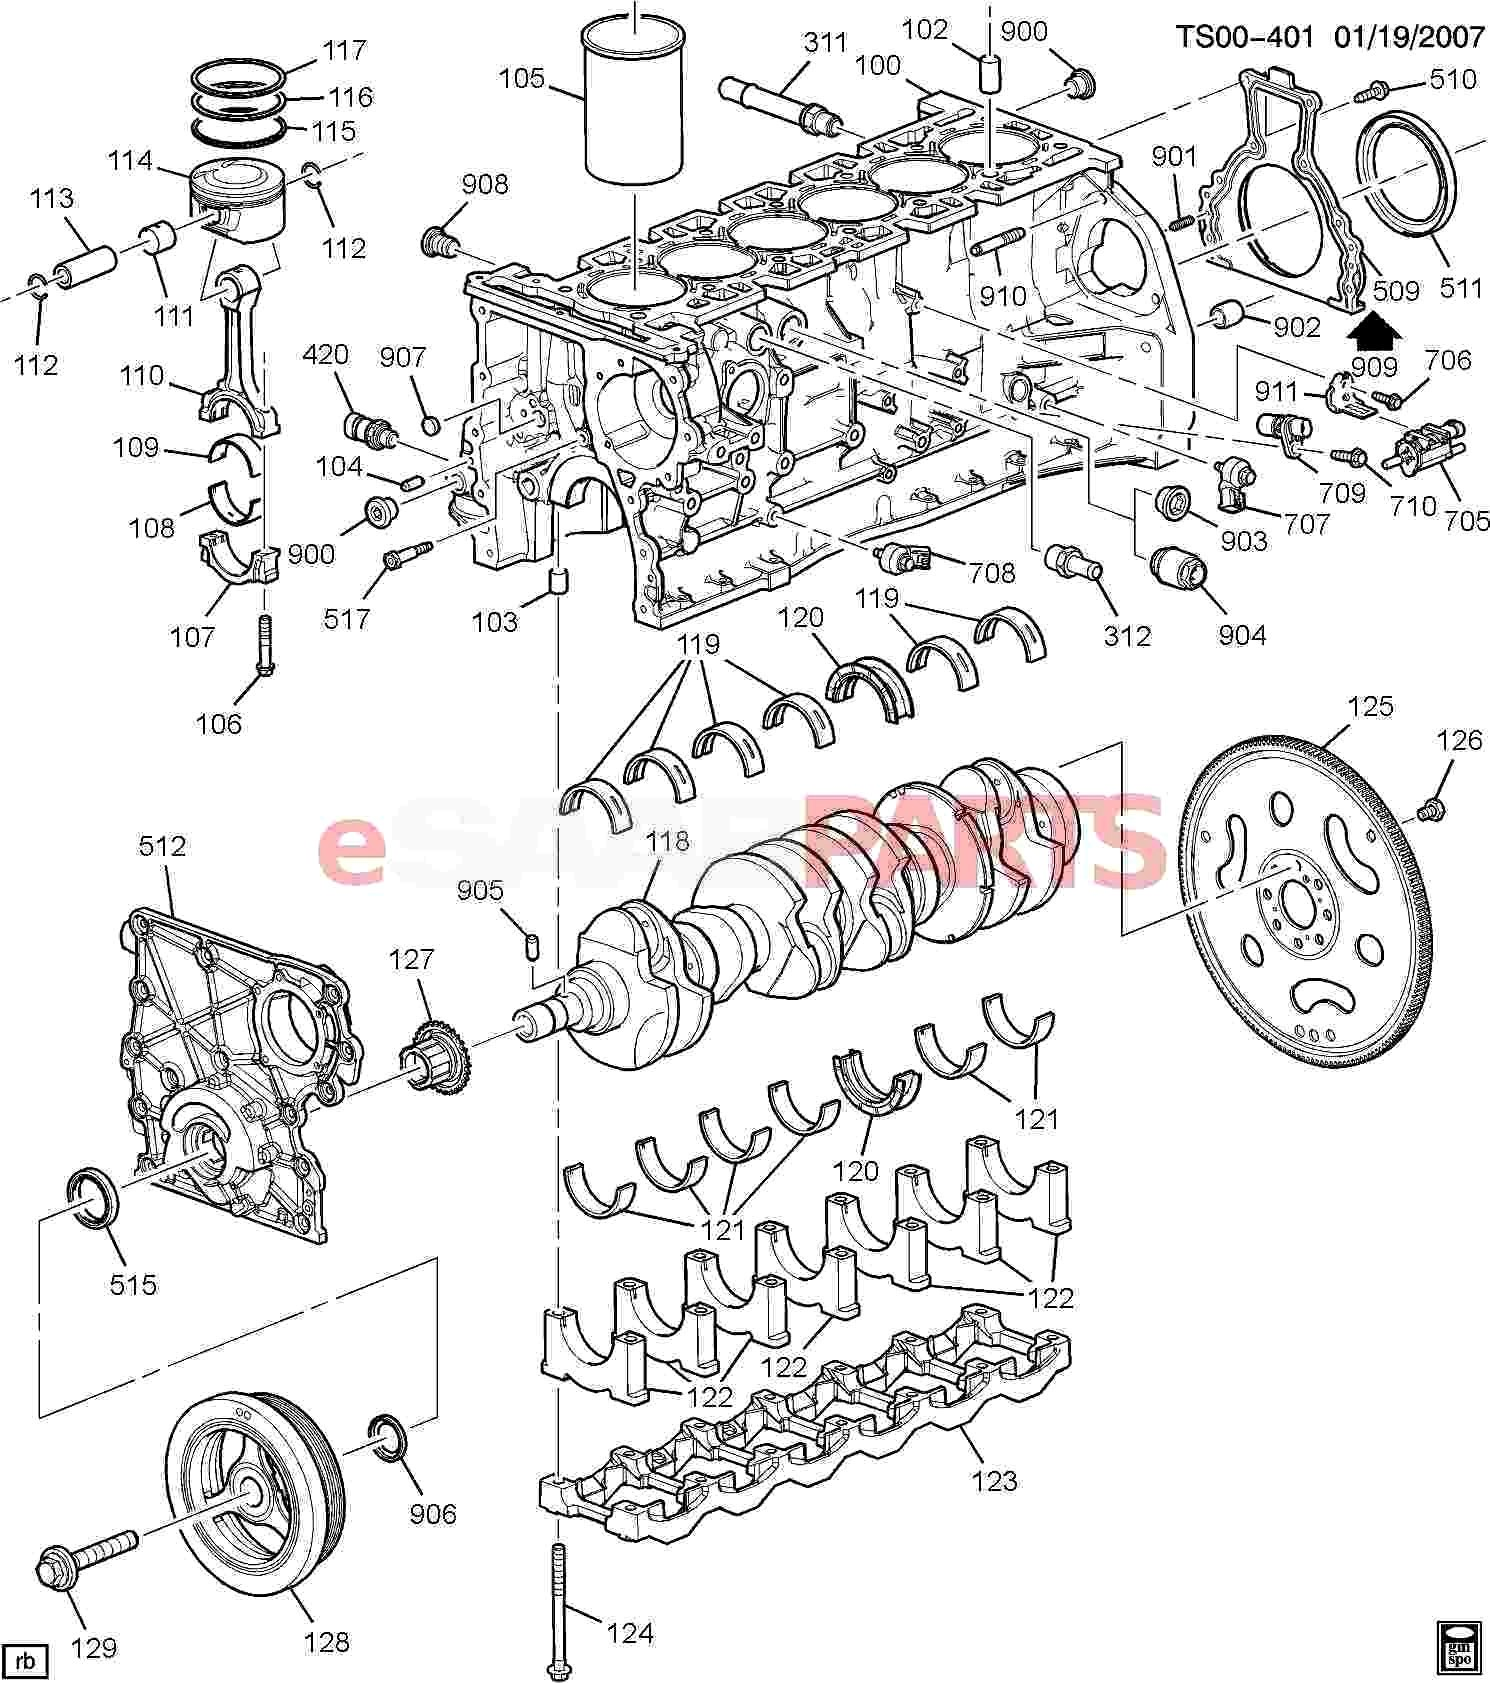 Gmc Truck Parts Diagram 2018 Chevrolet Performance Parts Catalog Beautiful Chevy Van Parts Of Gmc Truck Parts Diagram